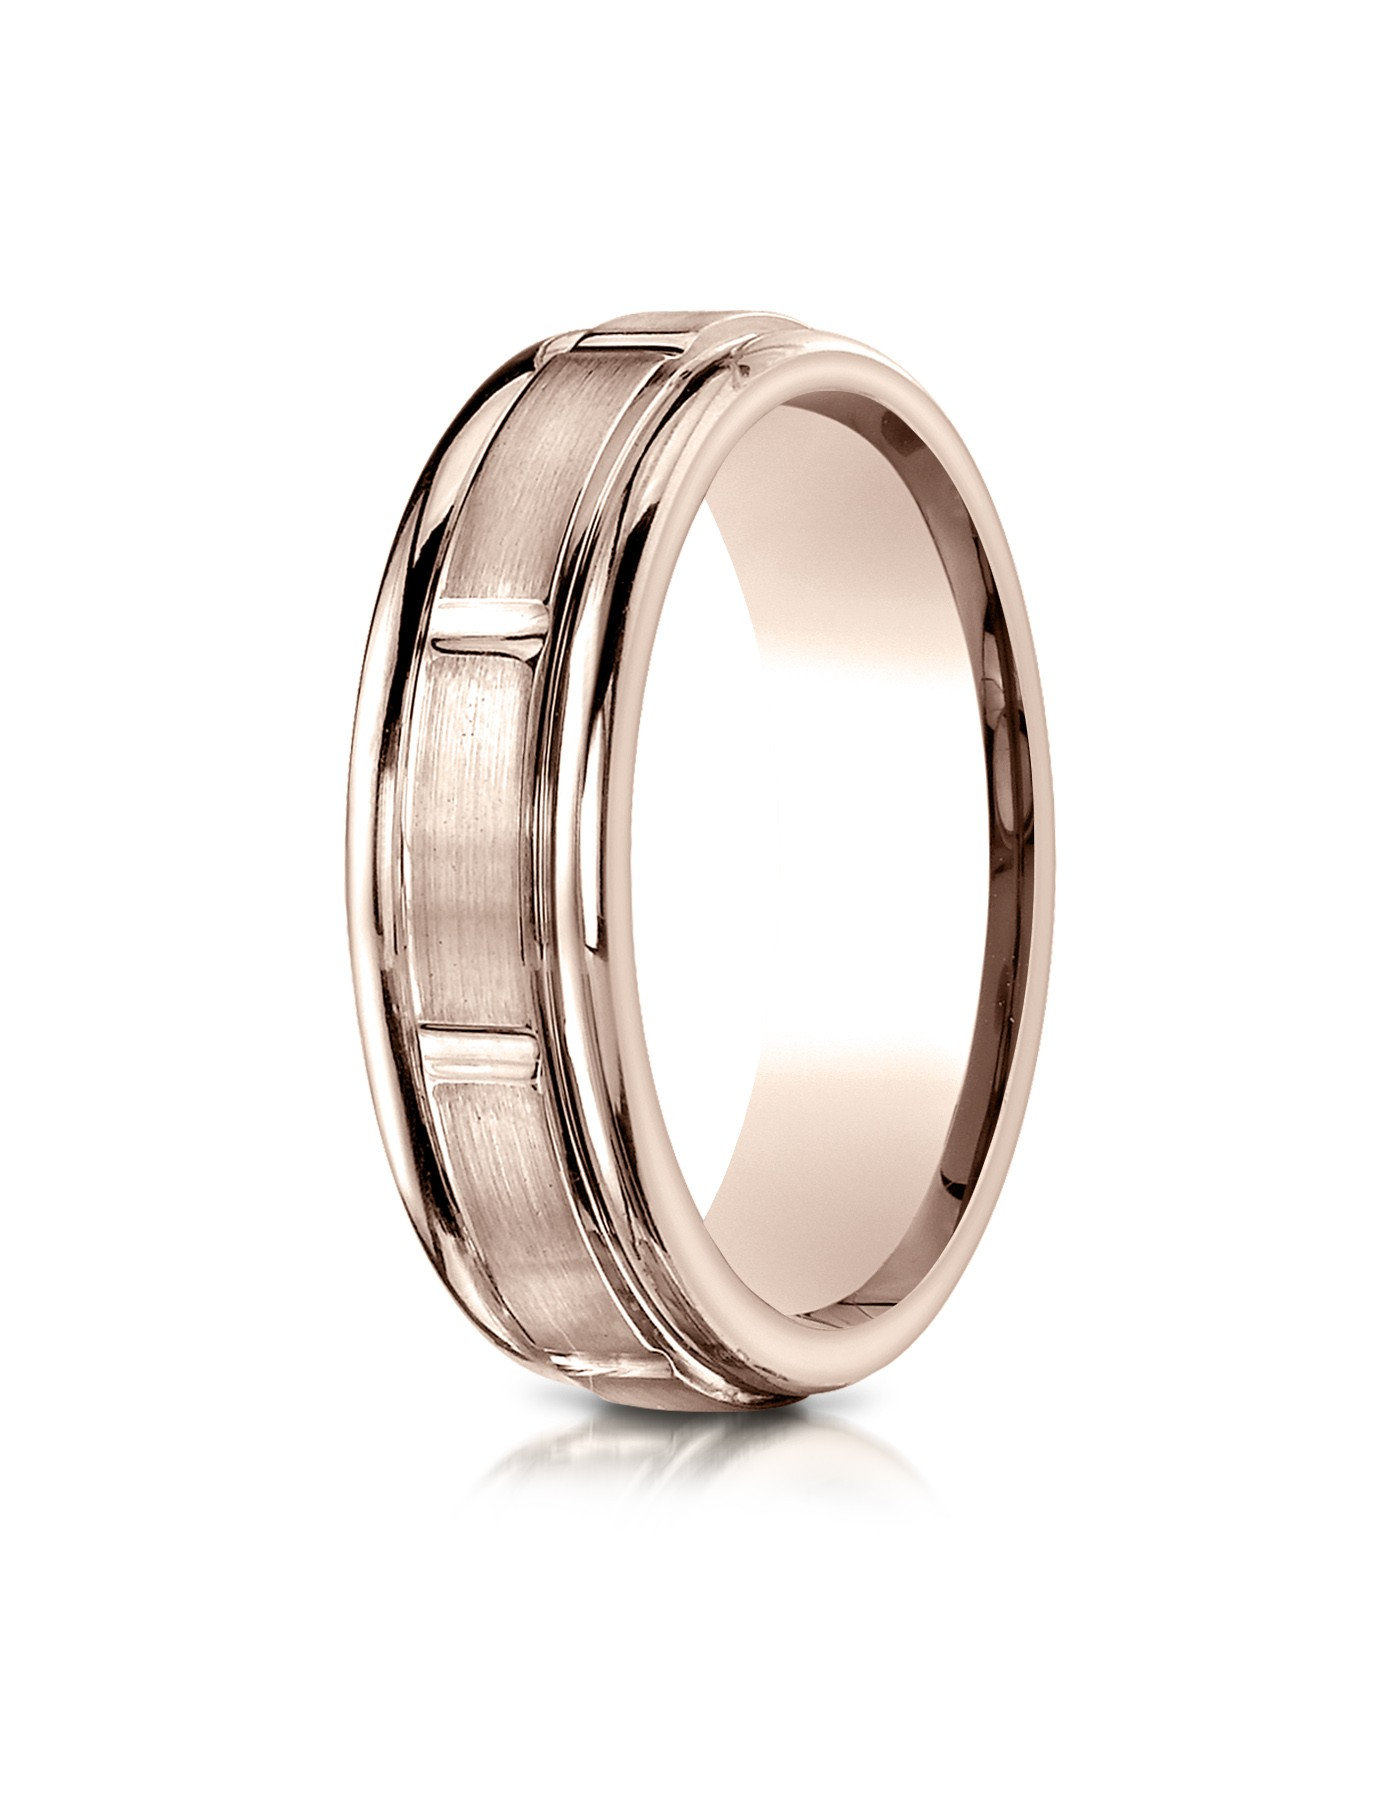 14k Rose Gold 6mm Comfort-fit Satin-finished 8 High Polished Center Cuts And Round Edge Carved Design Band